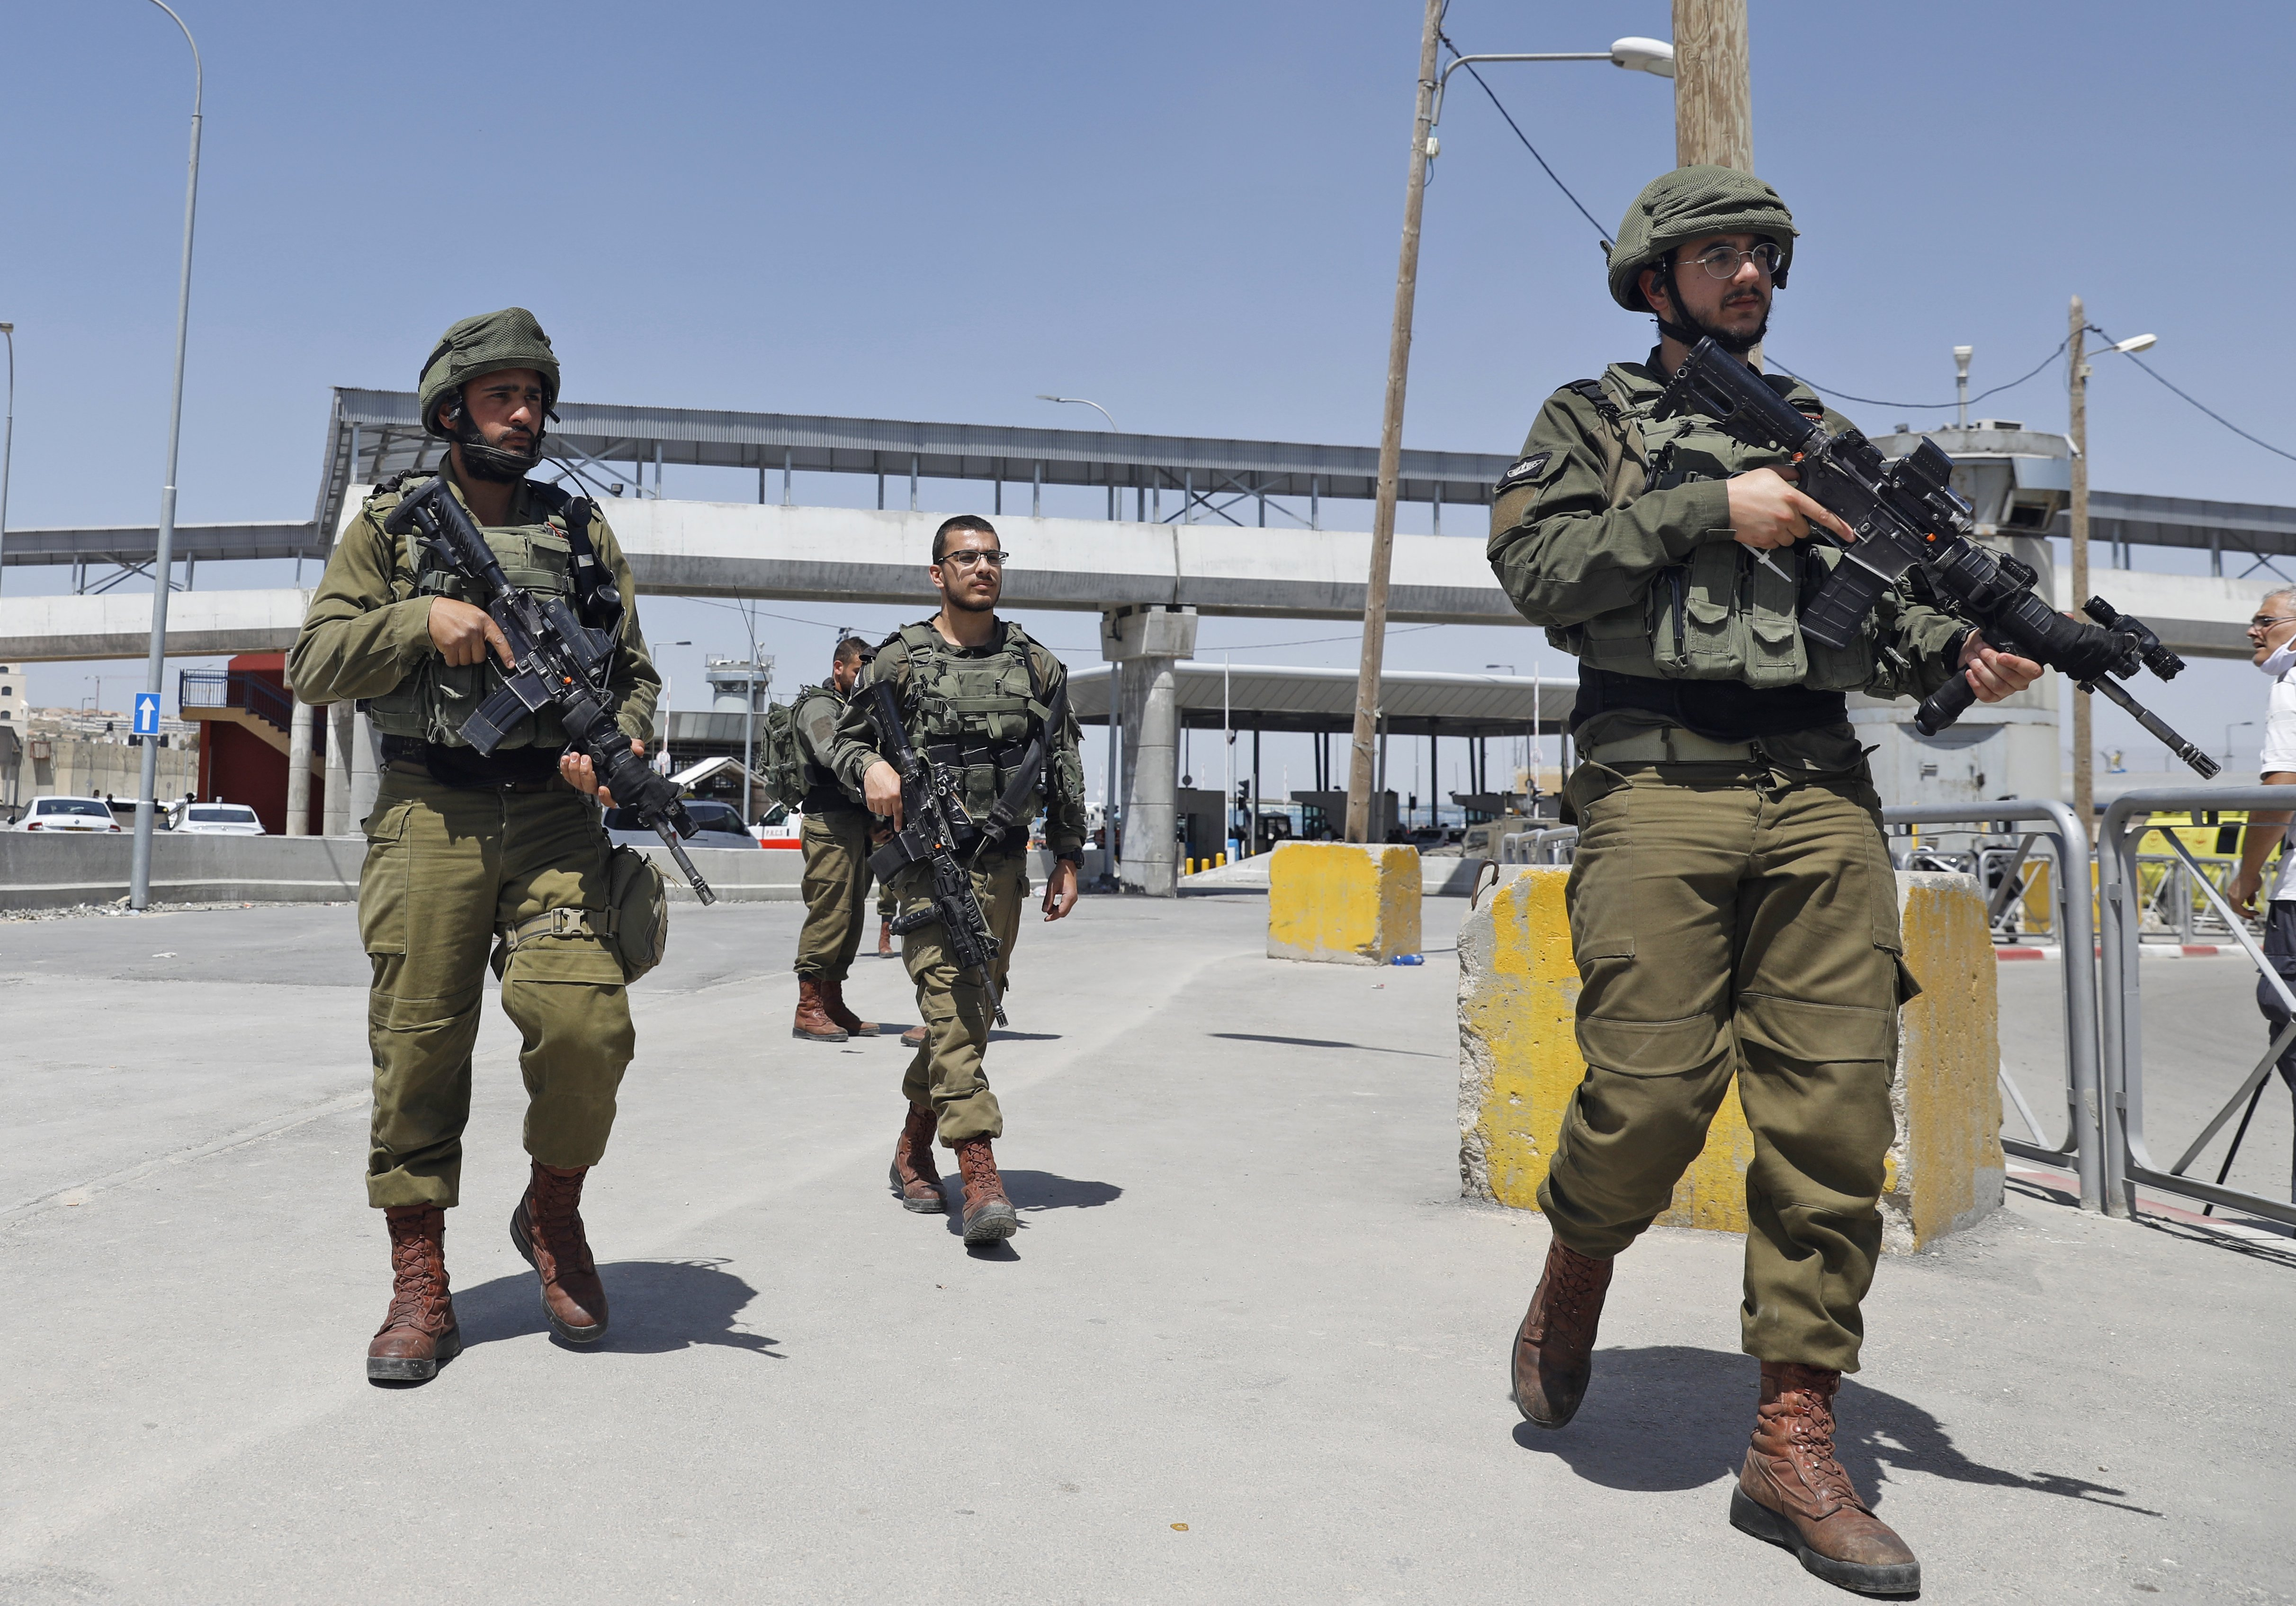 Israeli soldiers gather at a checkpoint in the occupied West Bank in May 2020 (AFP)